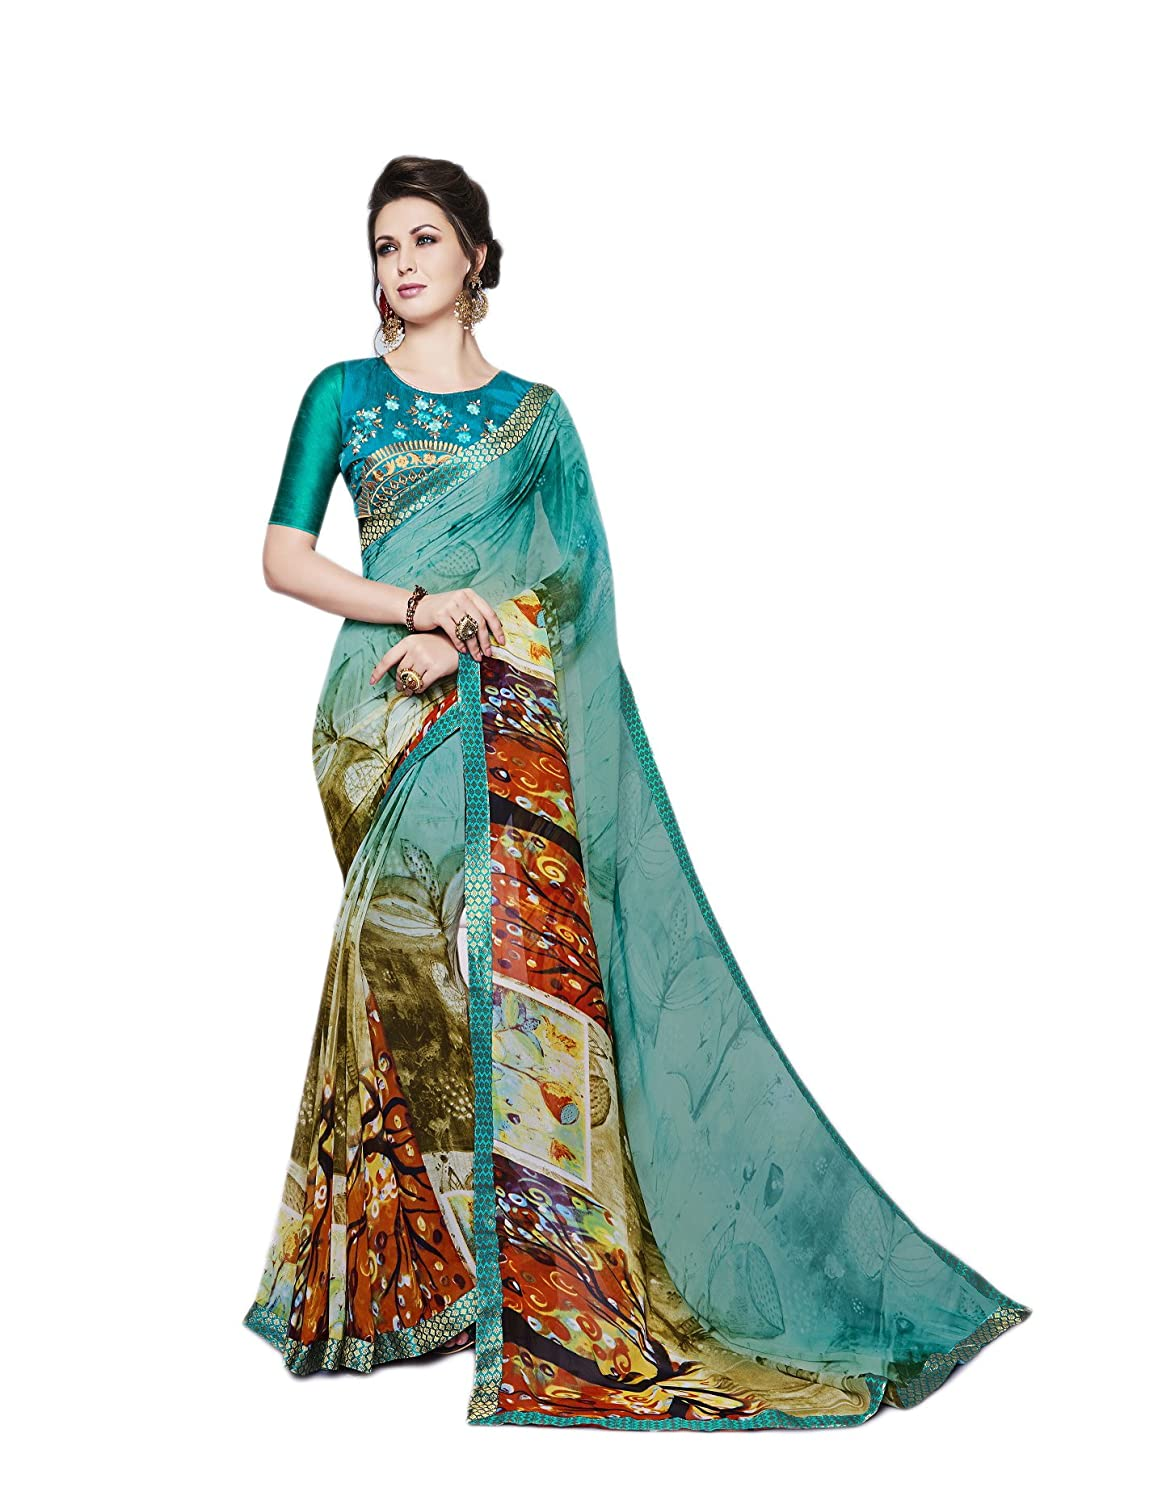 Indian Bollywood Designer Women's Ethnic Traditonal Wear Saree Sari 51009219